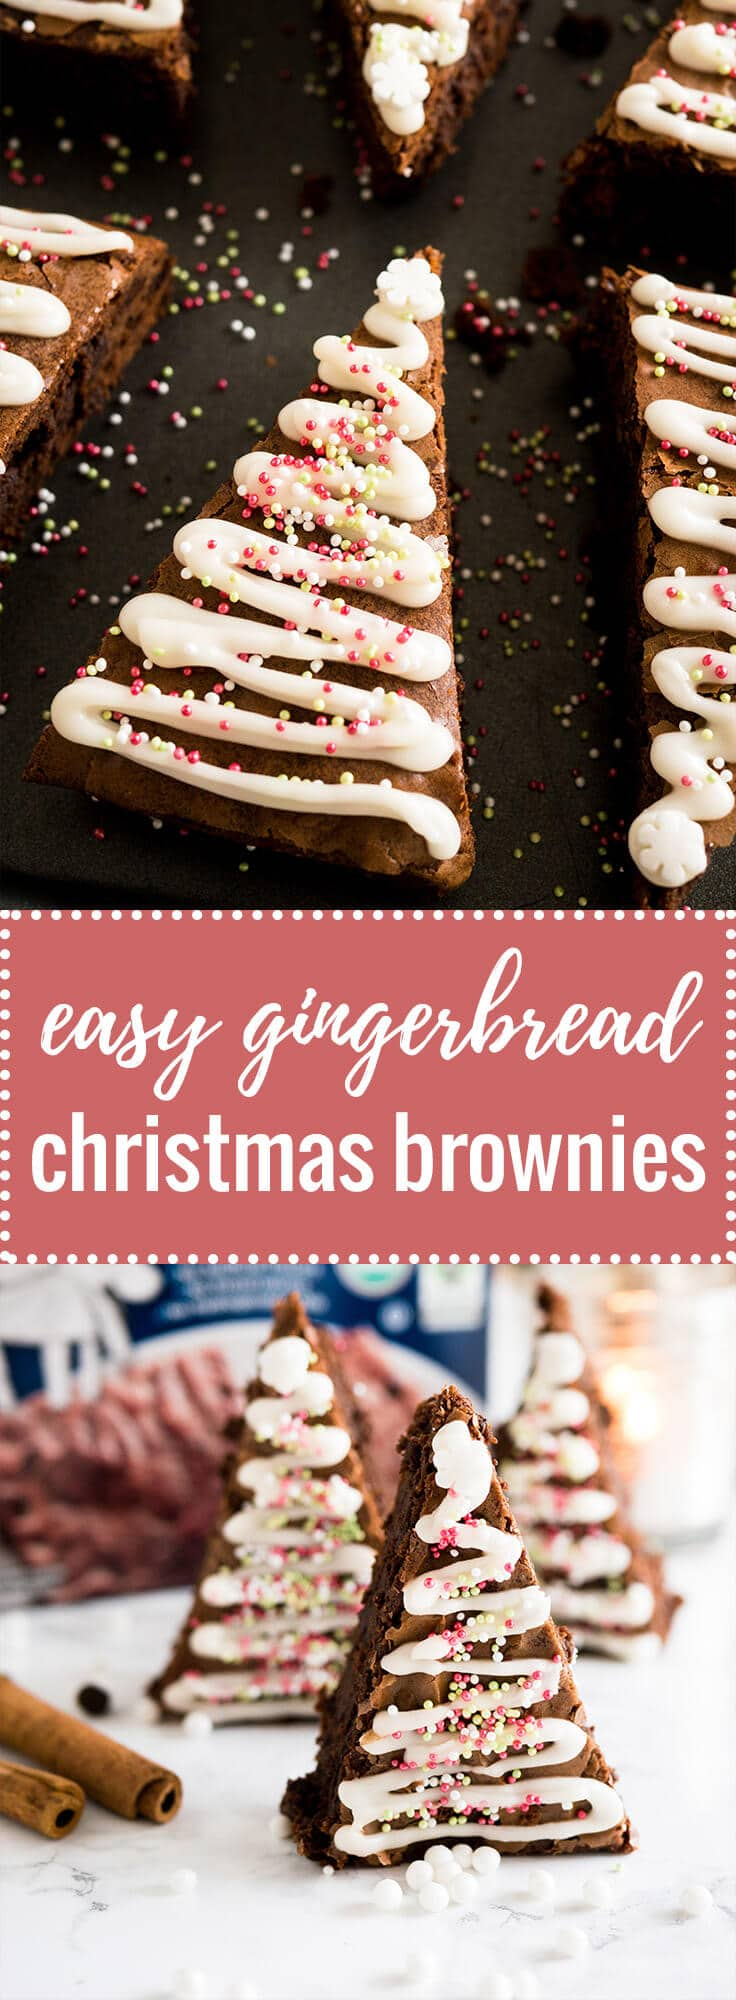 These Gingerbread Christmas Brownies take just minutes to put together! Add a seasonal spin to classic fudgy brownies with an easy semi-from-scratch recipe for Christmas Tree Brownies.